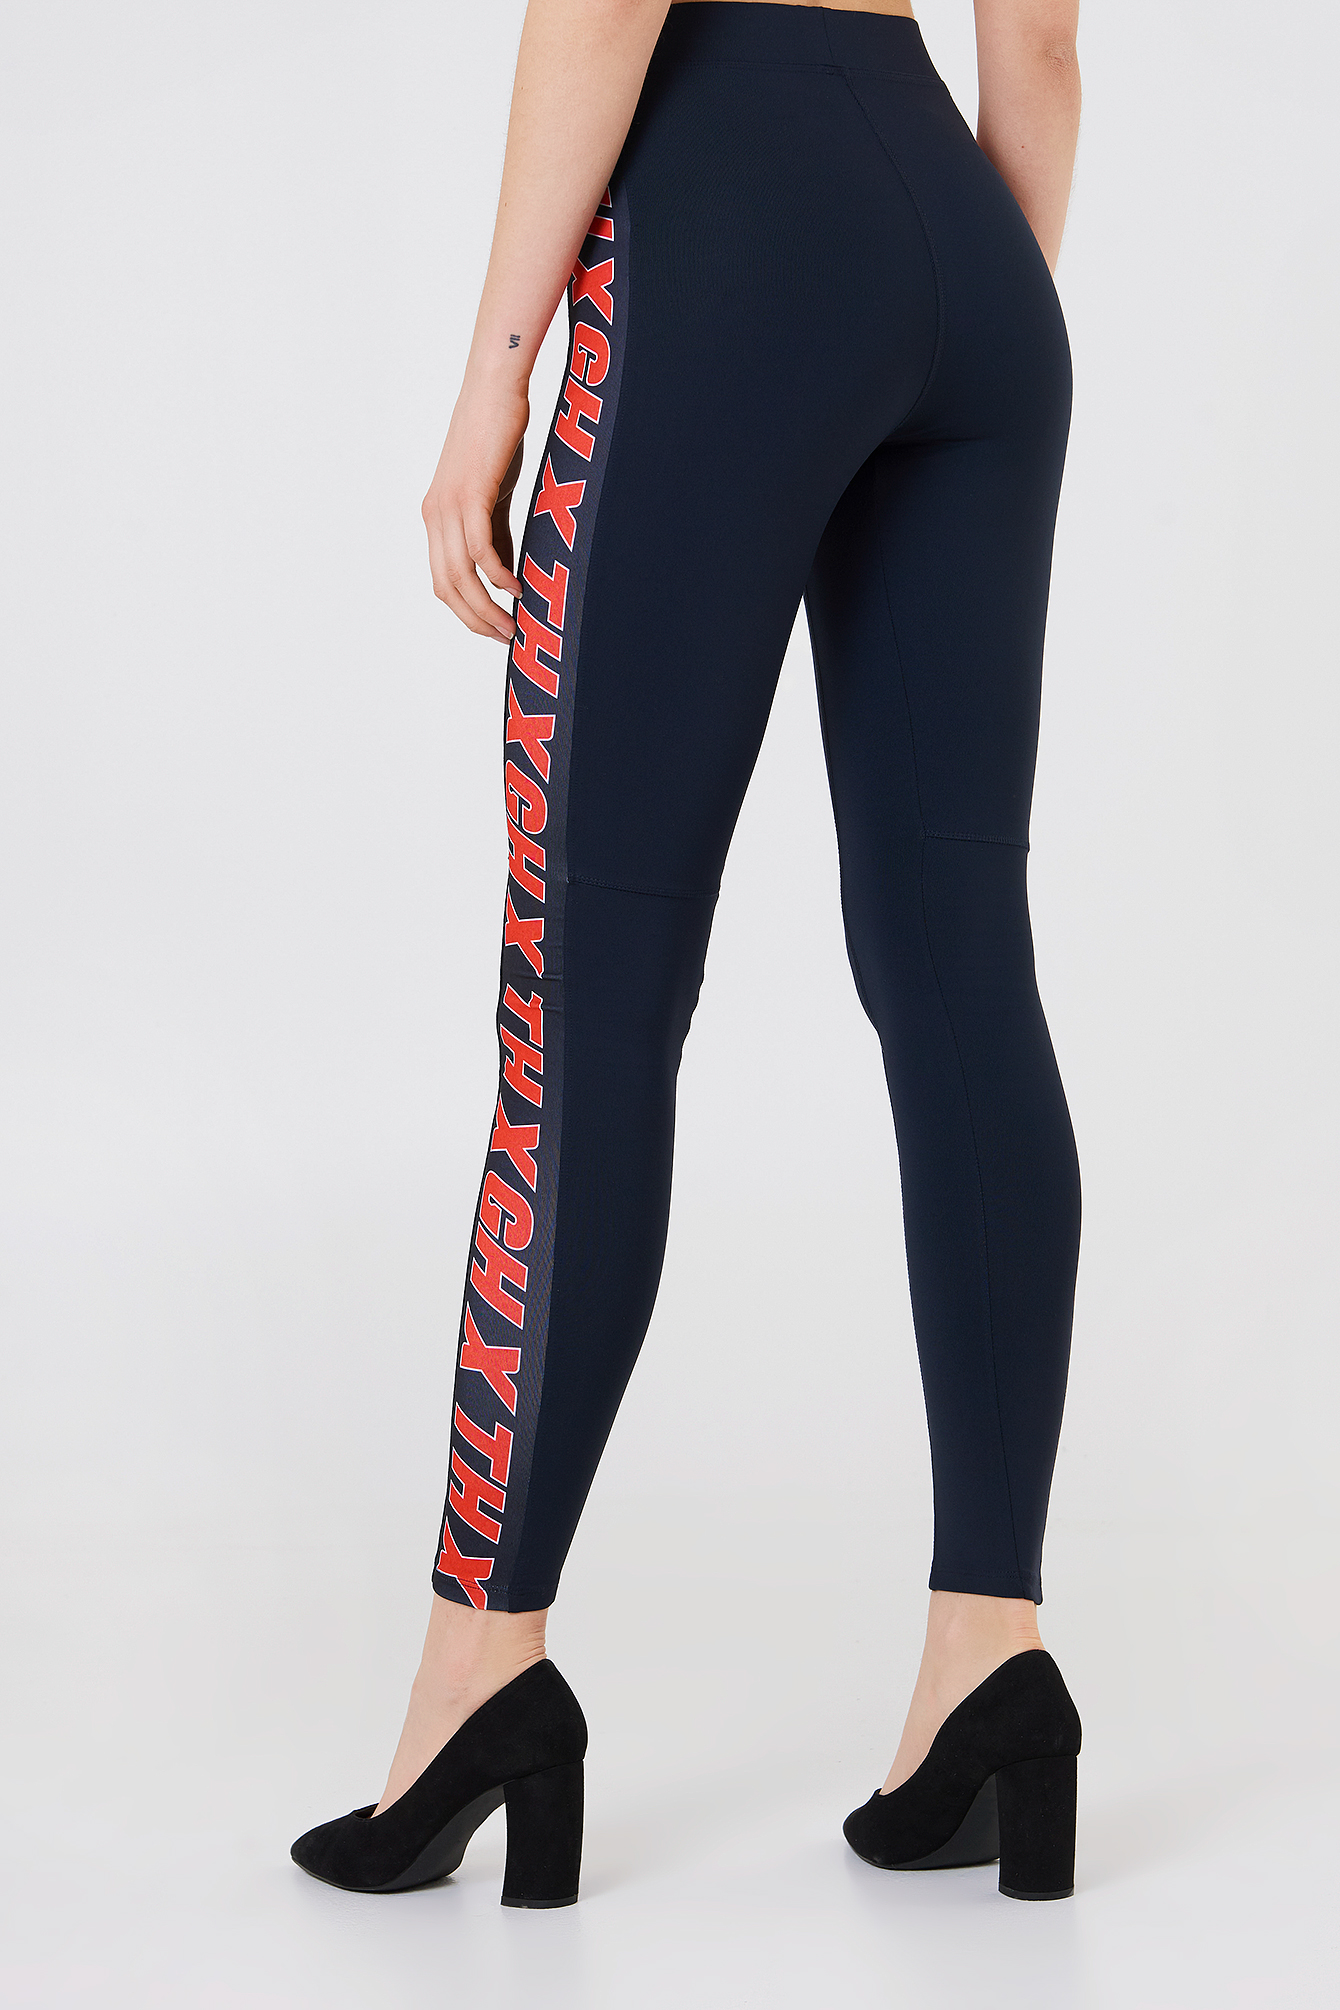 Gigi Hadid Racing Leggings NA-KD.COM